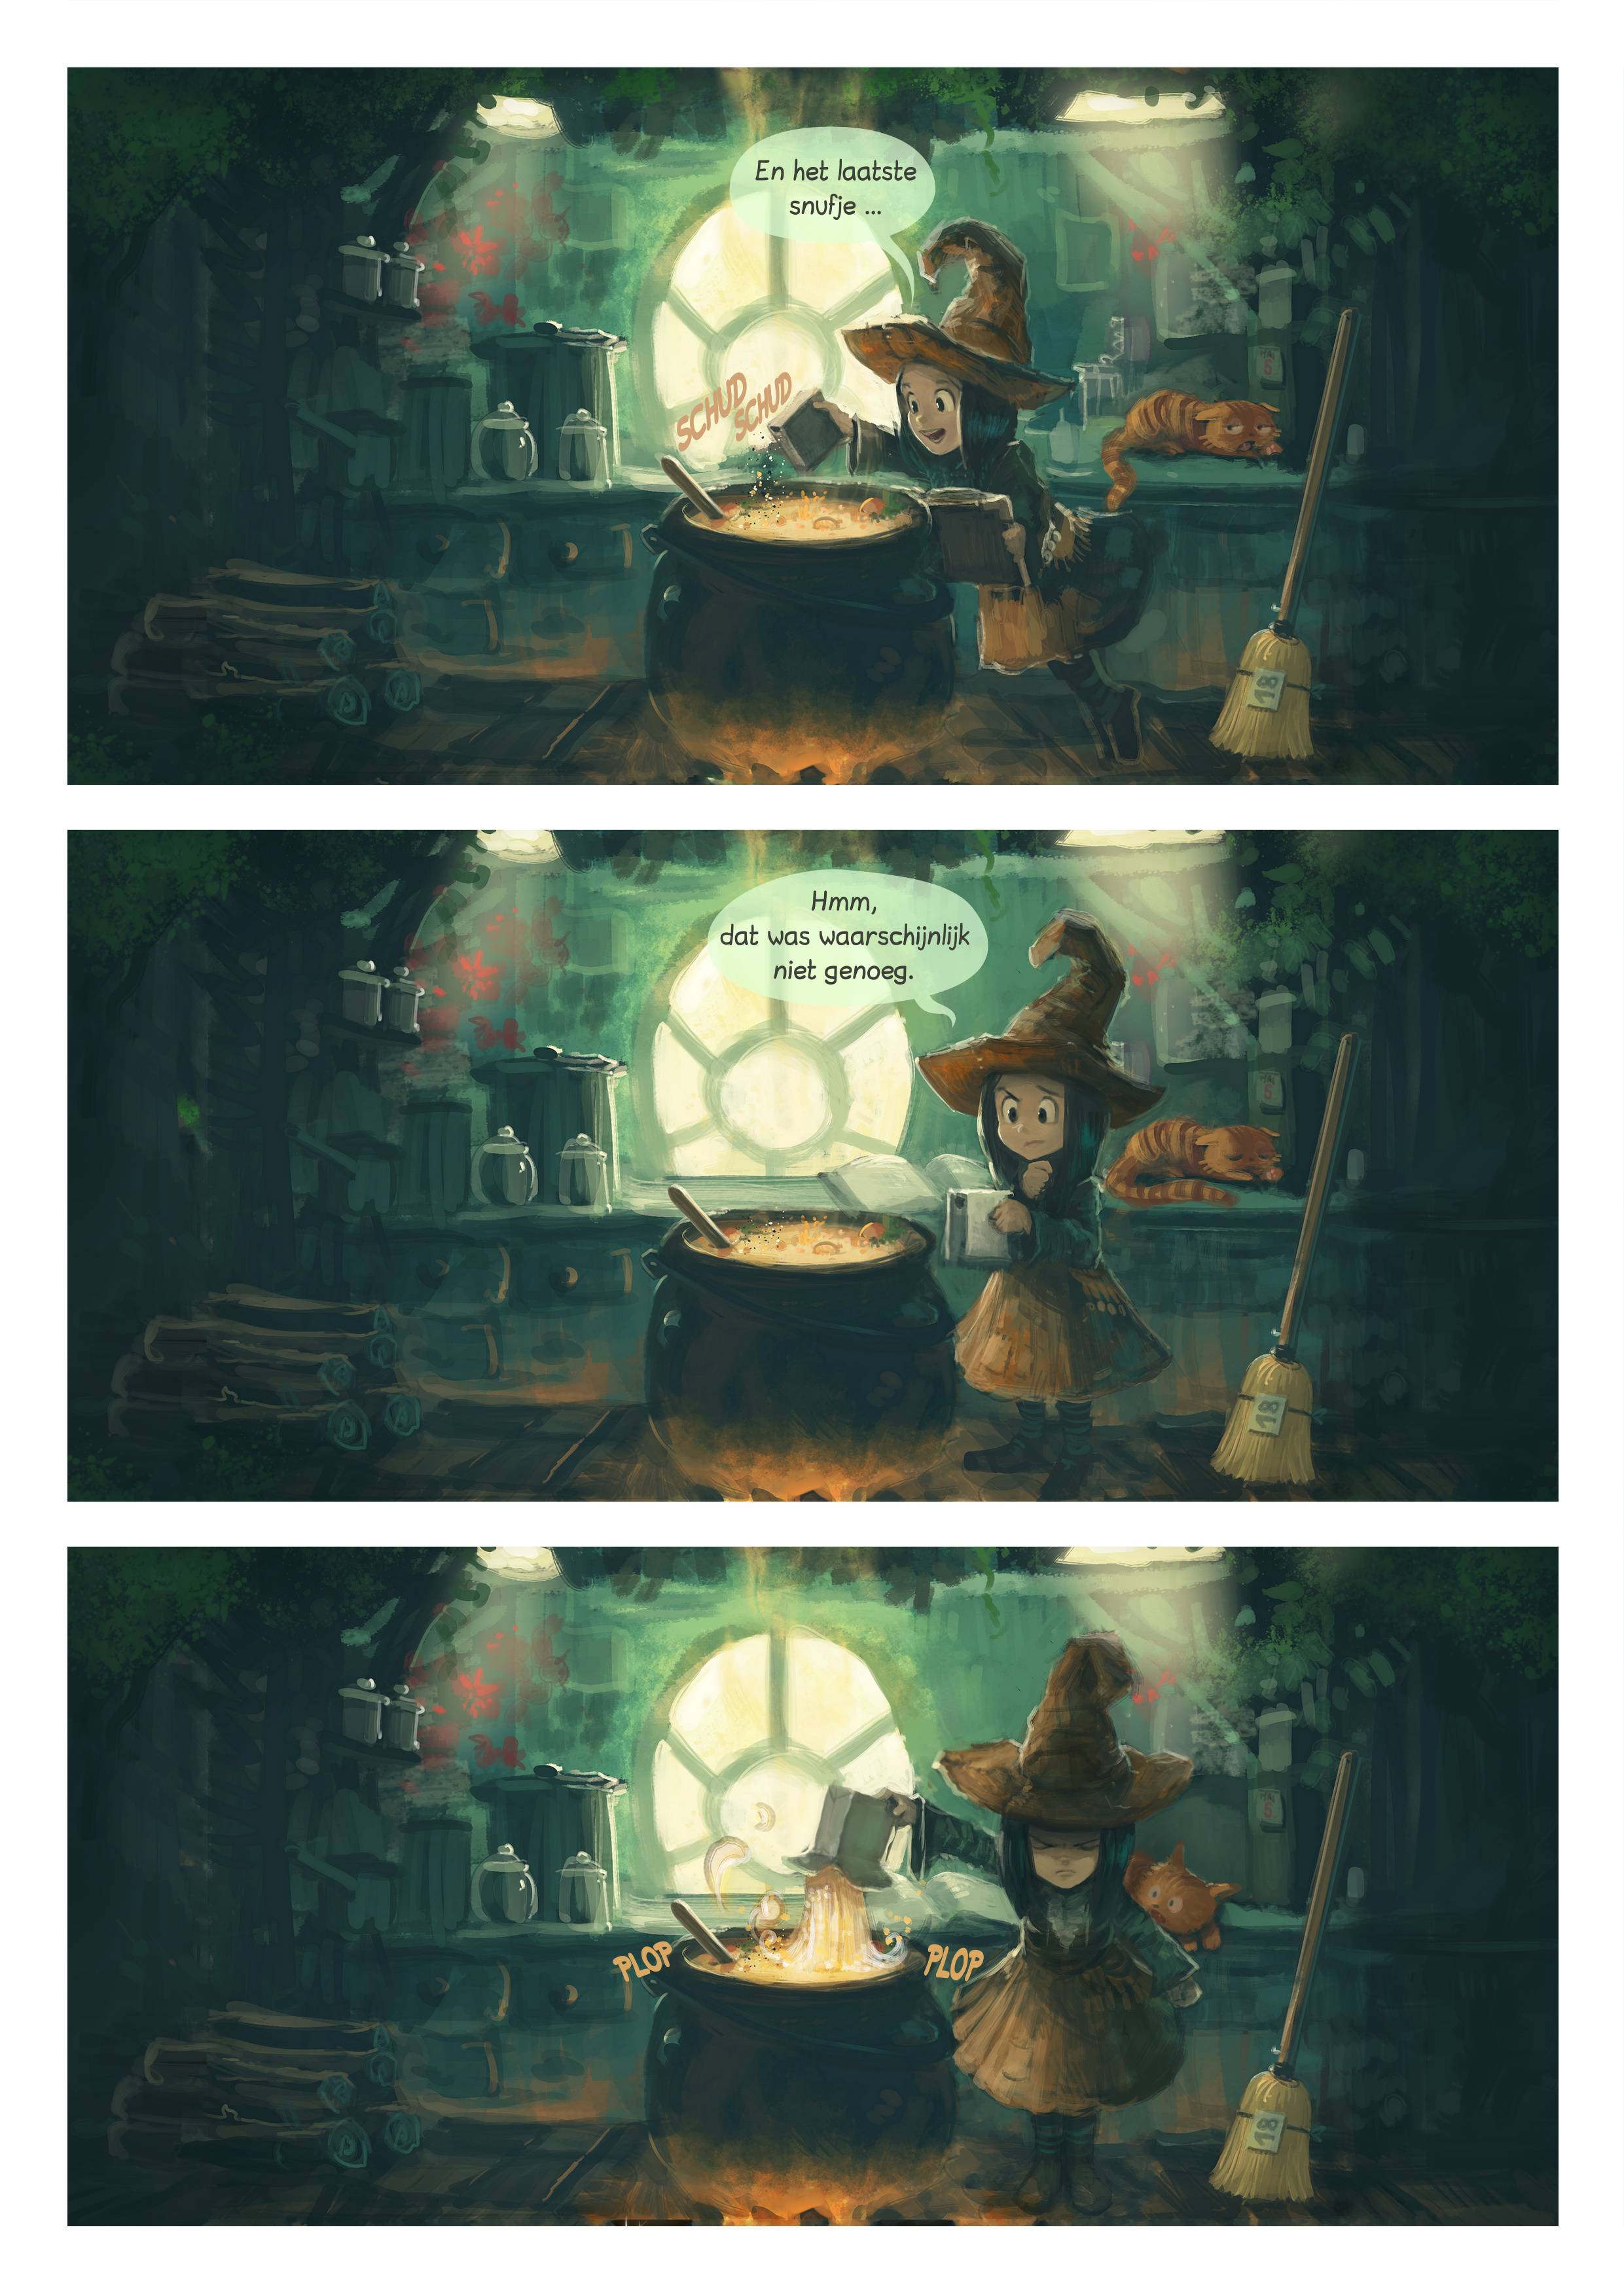 A webcomic page of Pepper&Carrot, aflevering 1 [nl], pagina 1